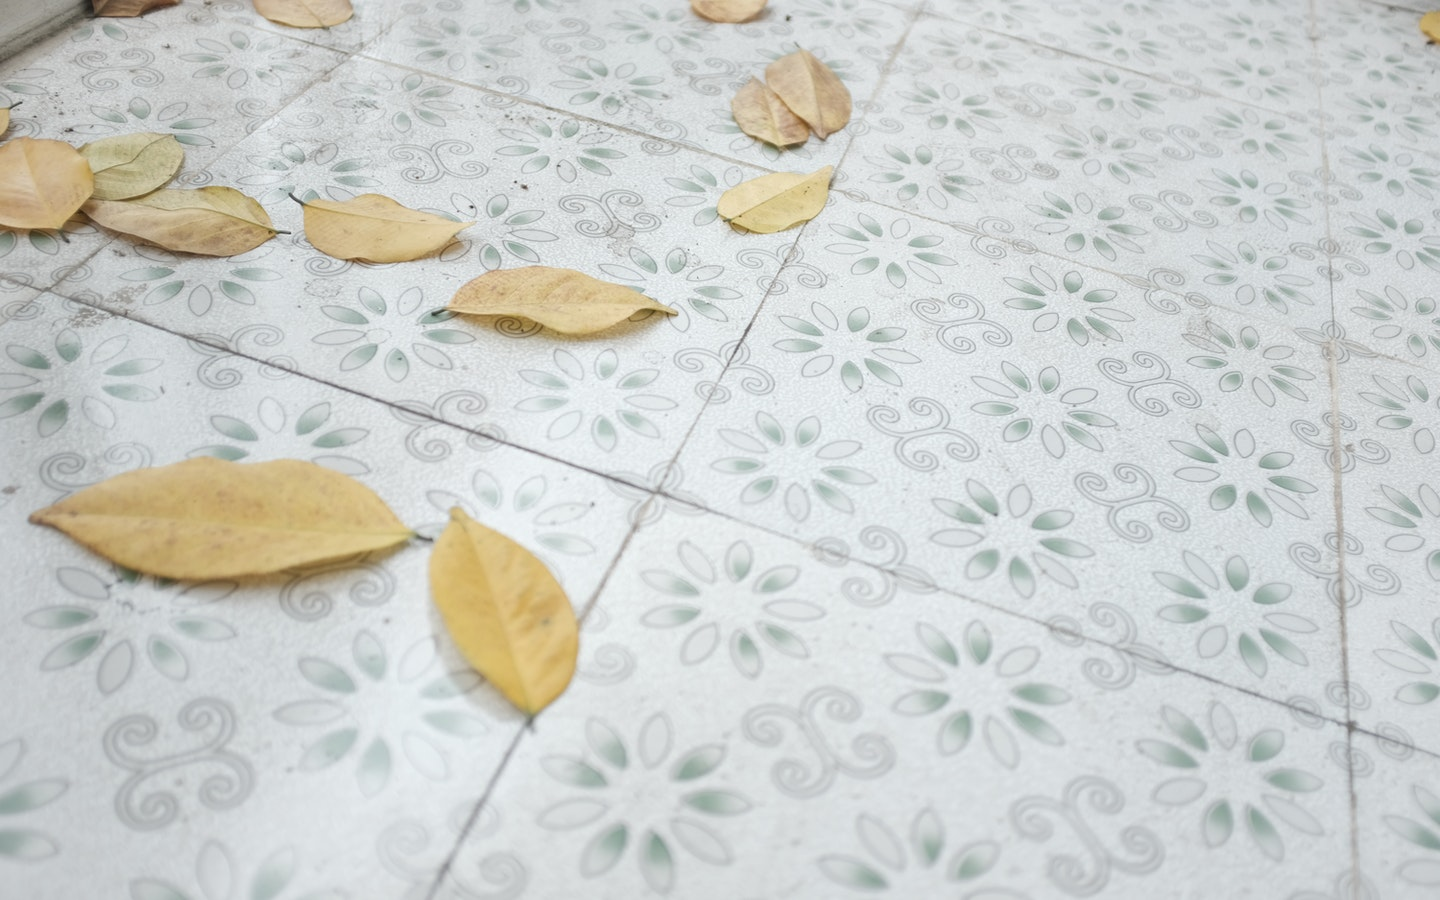 withered-leaves-on-floor